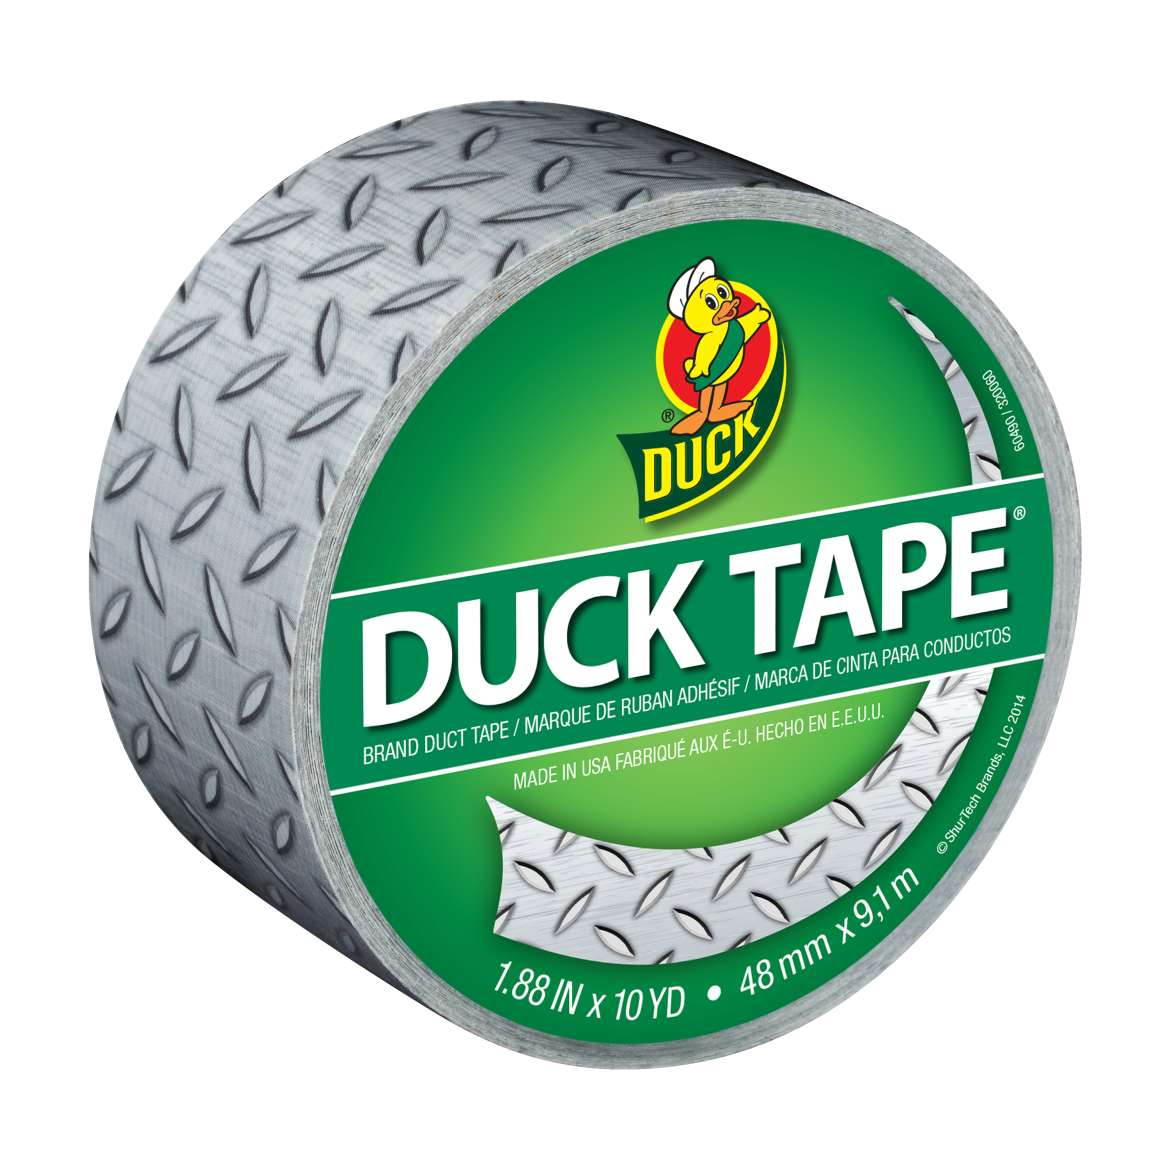 Printed Duck Tape® Brand Duct Tape - Diamond Plate, 1.88 in. x 10 yd. Image